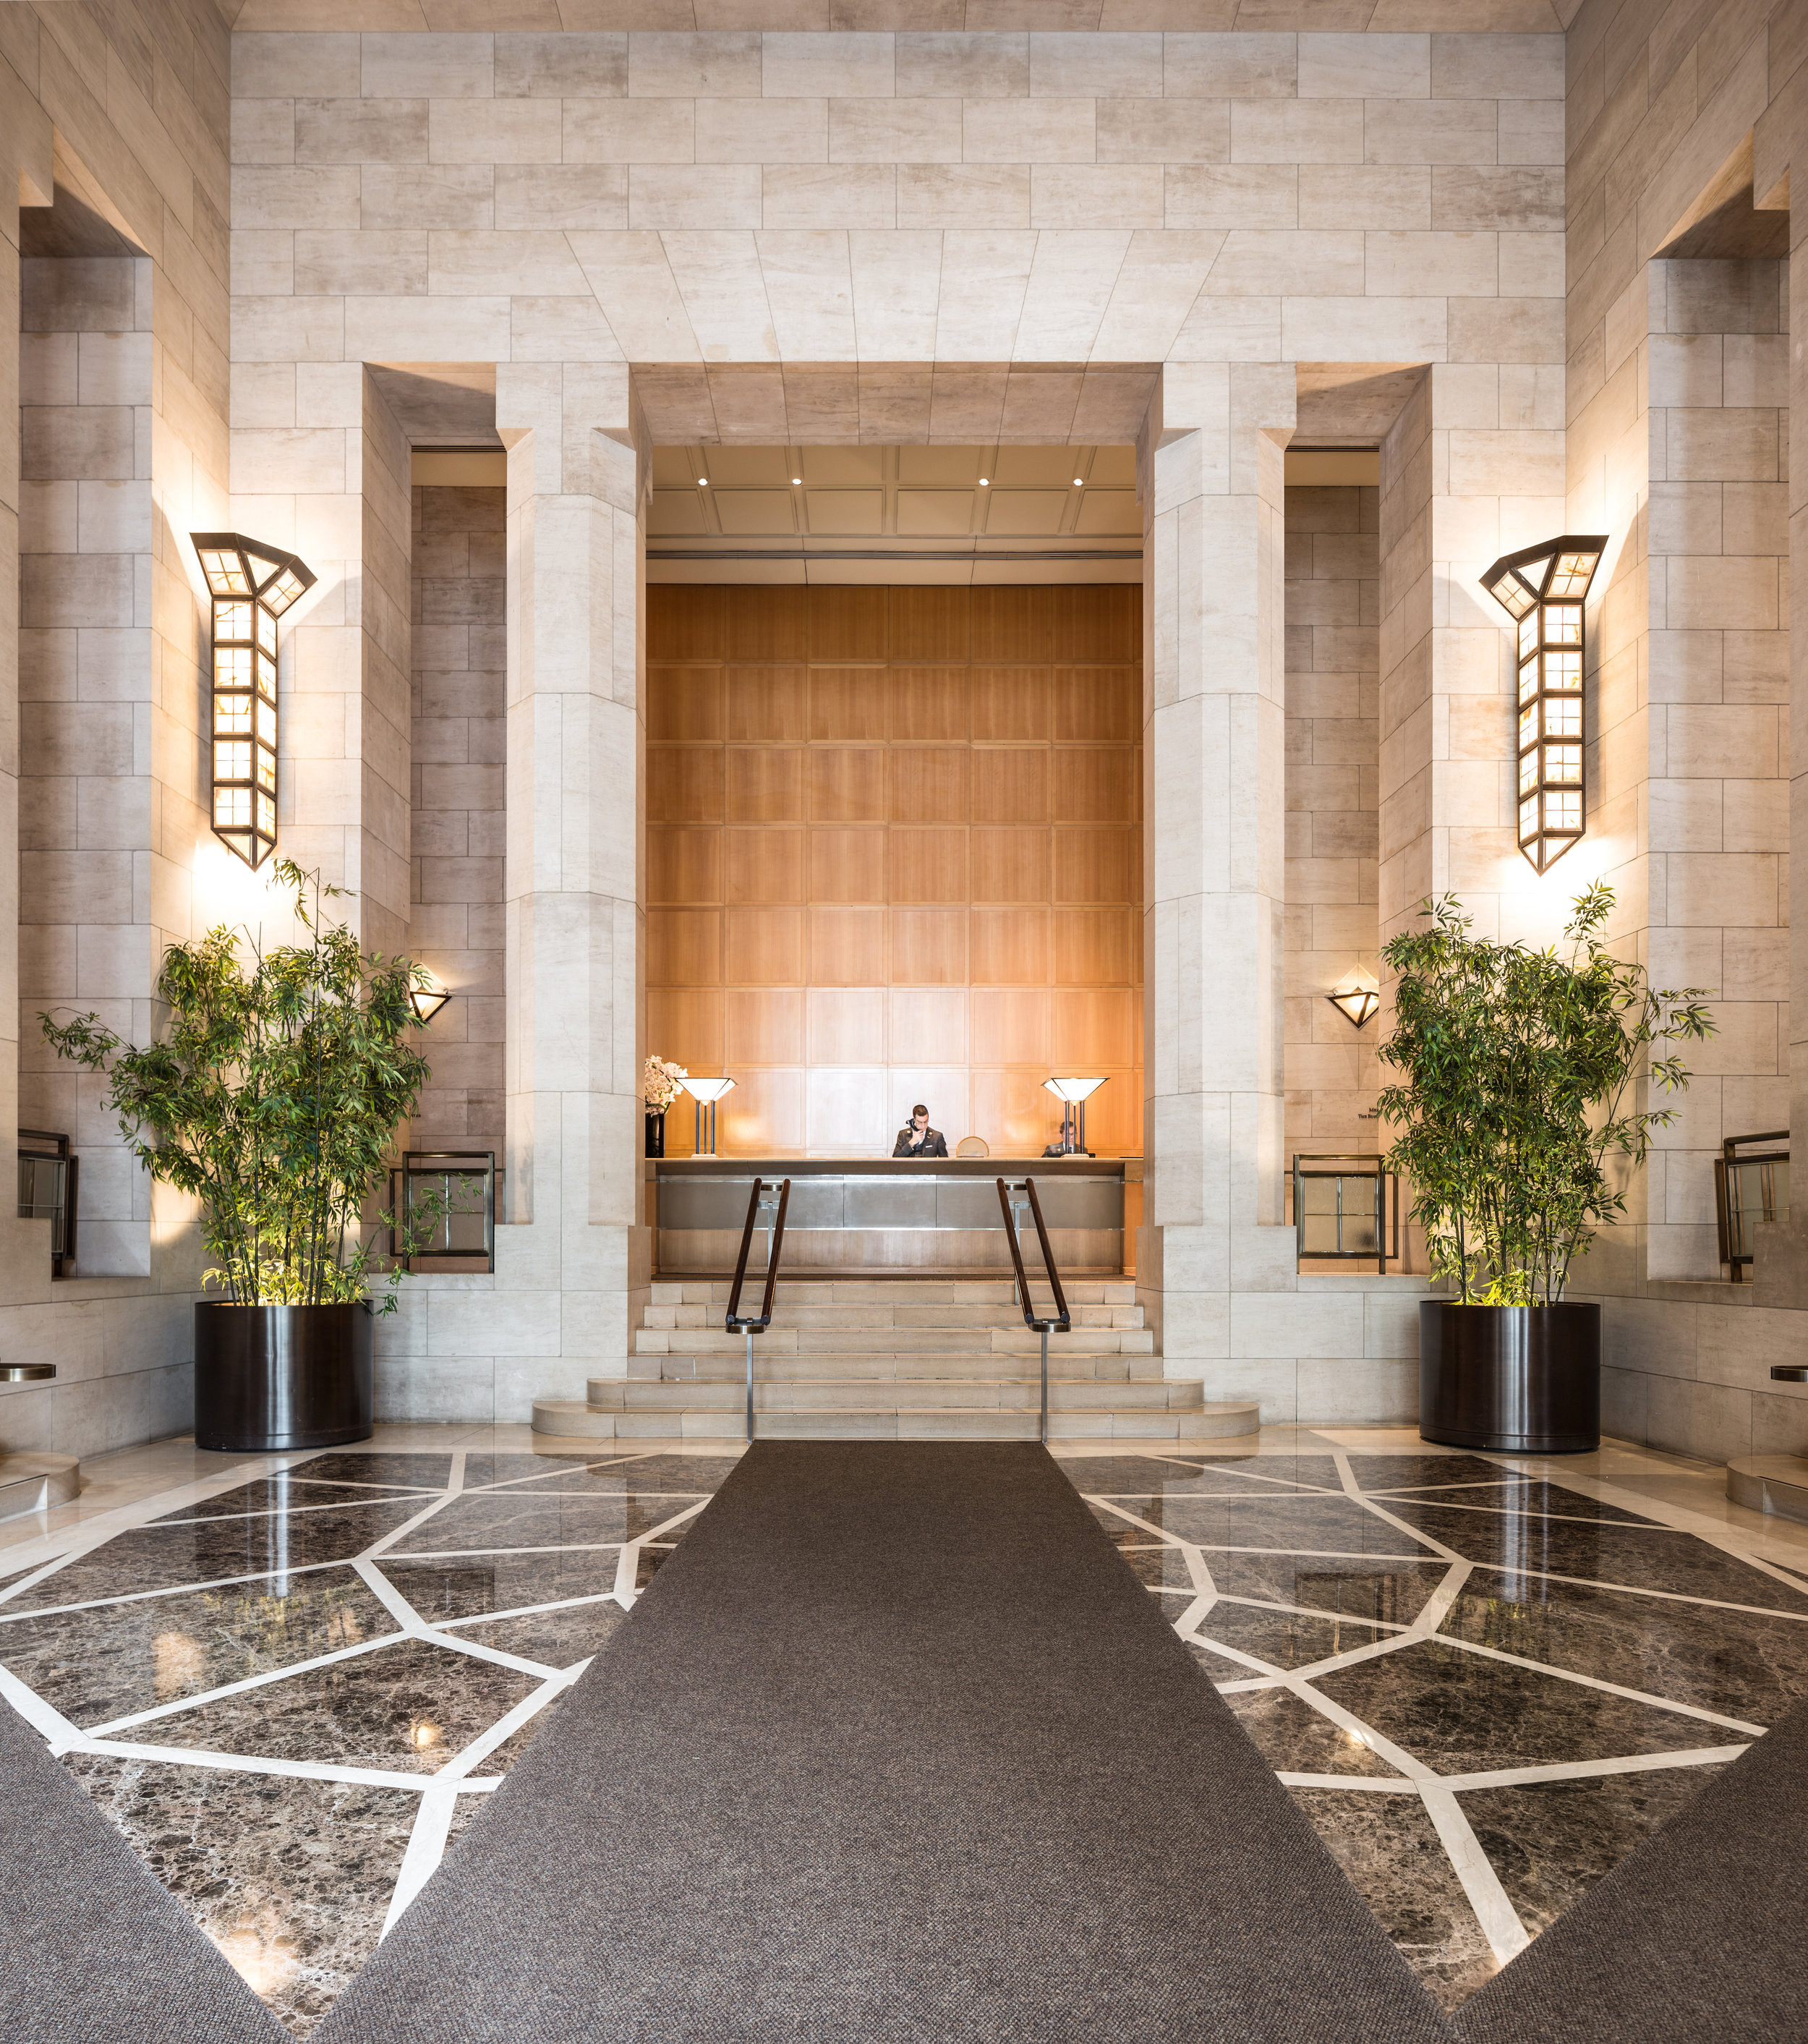 Interiors Photography - The Four Seasons